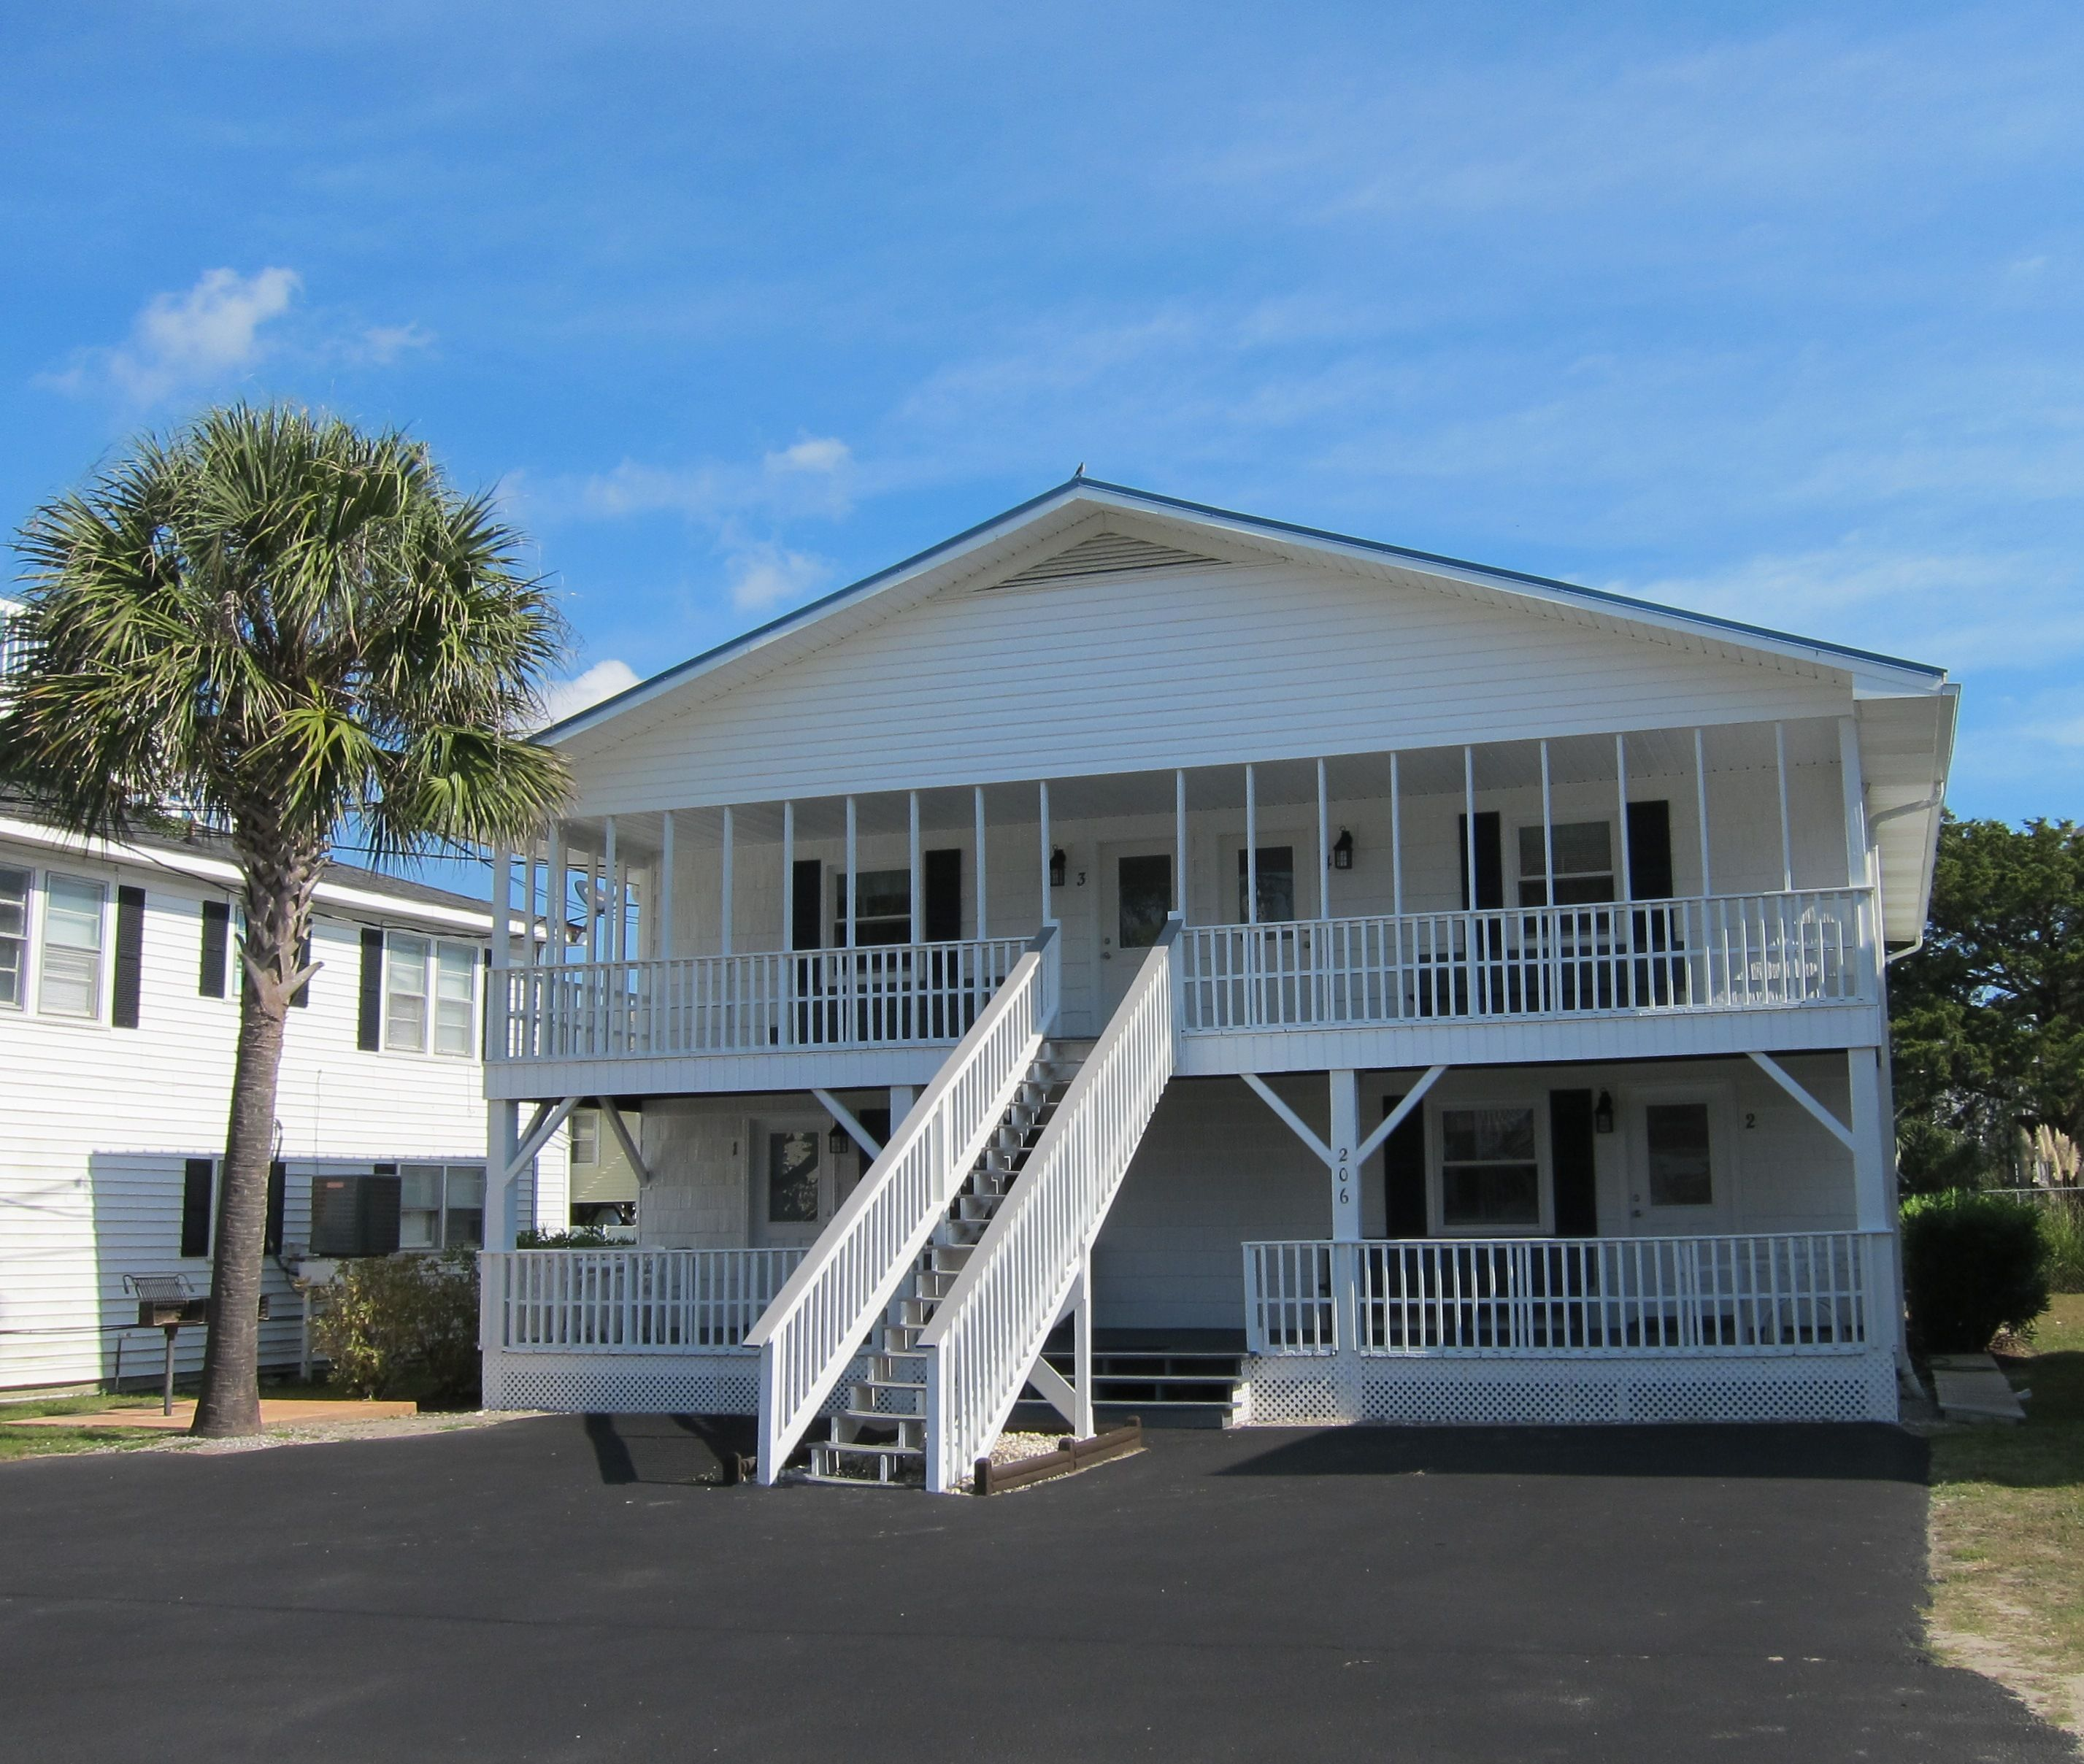 cottages type koa site sc carolina south cottage lodging myrtle campgrounds beach